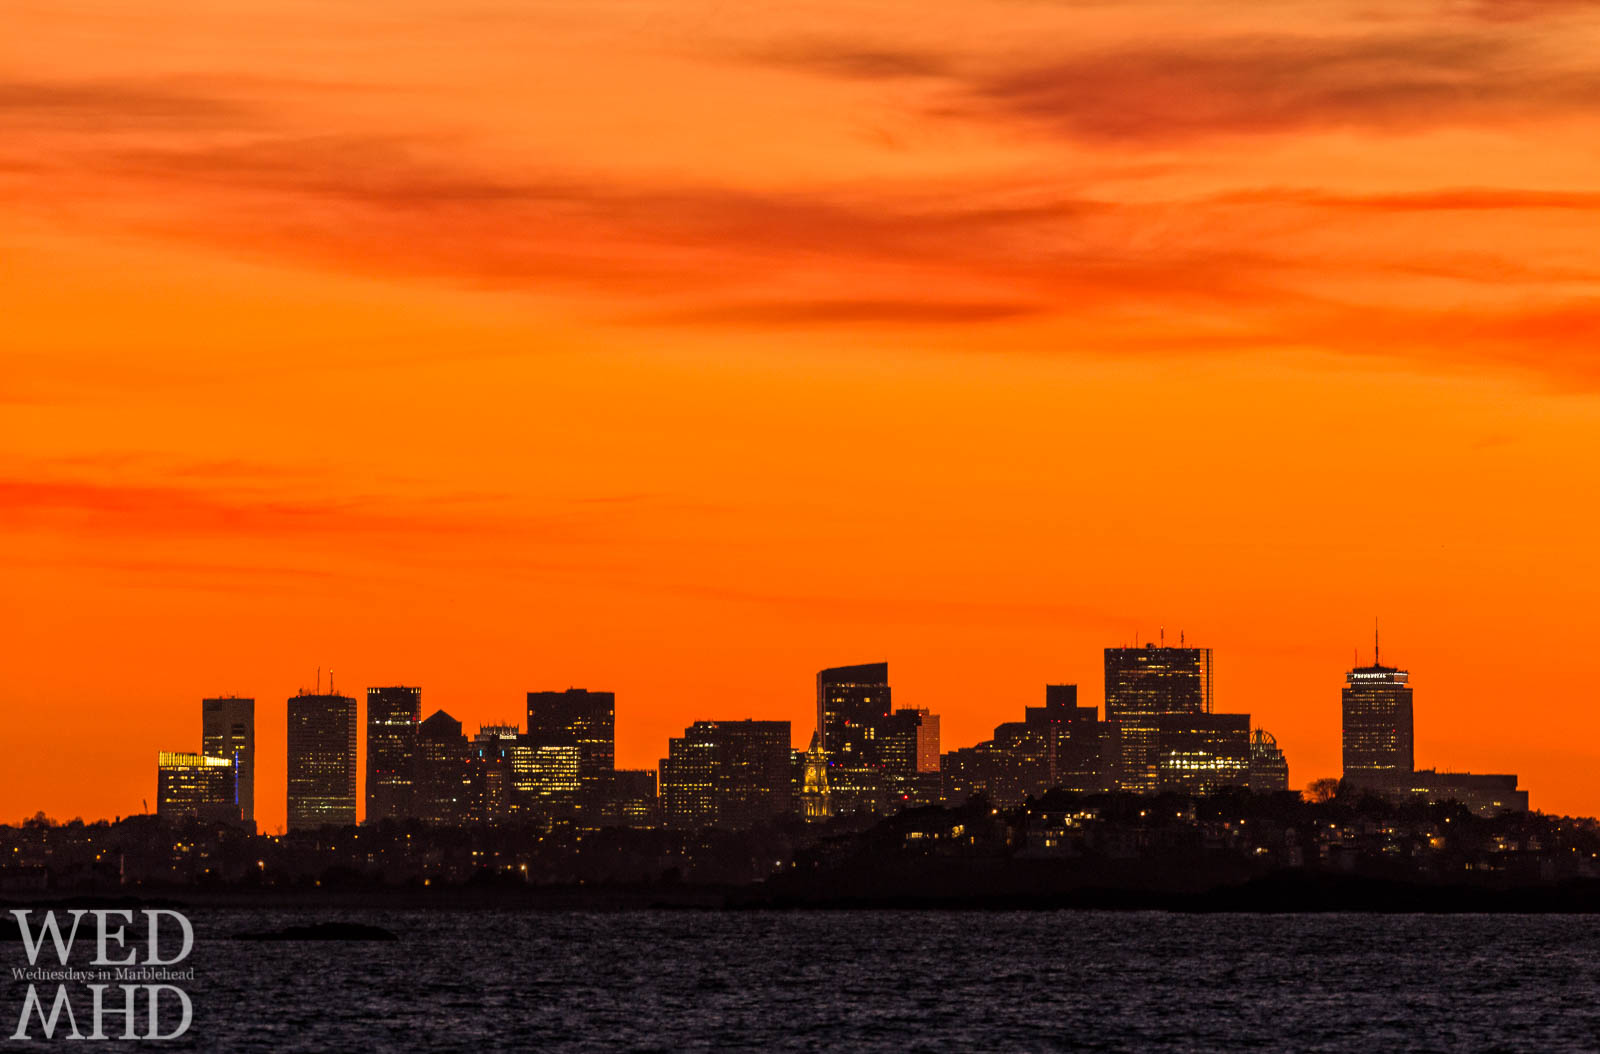 A view of Boston skyline from Marblehead at sunset. Despite being 15 miles away, on a clear night, the buildings can easily be seen from the North Shore.